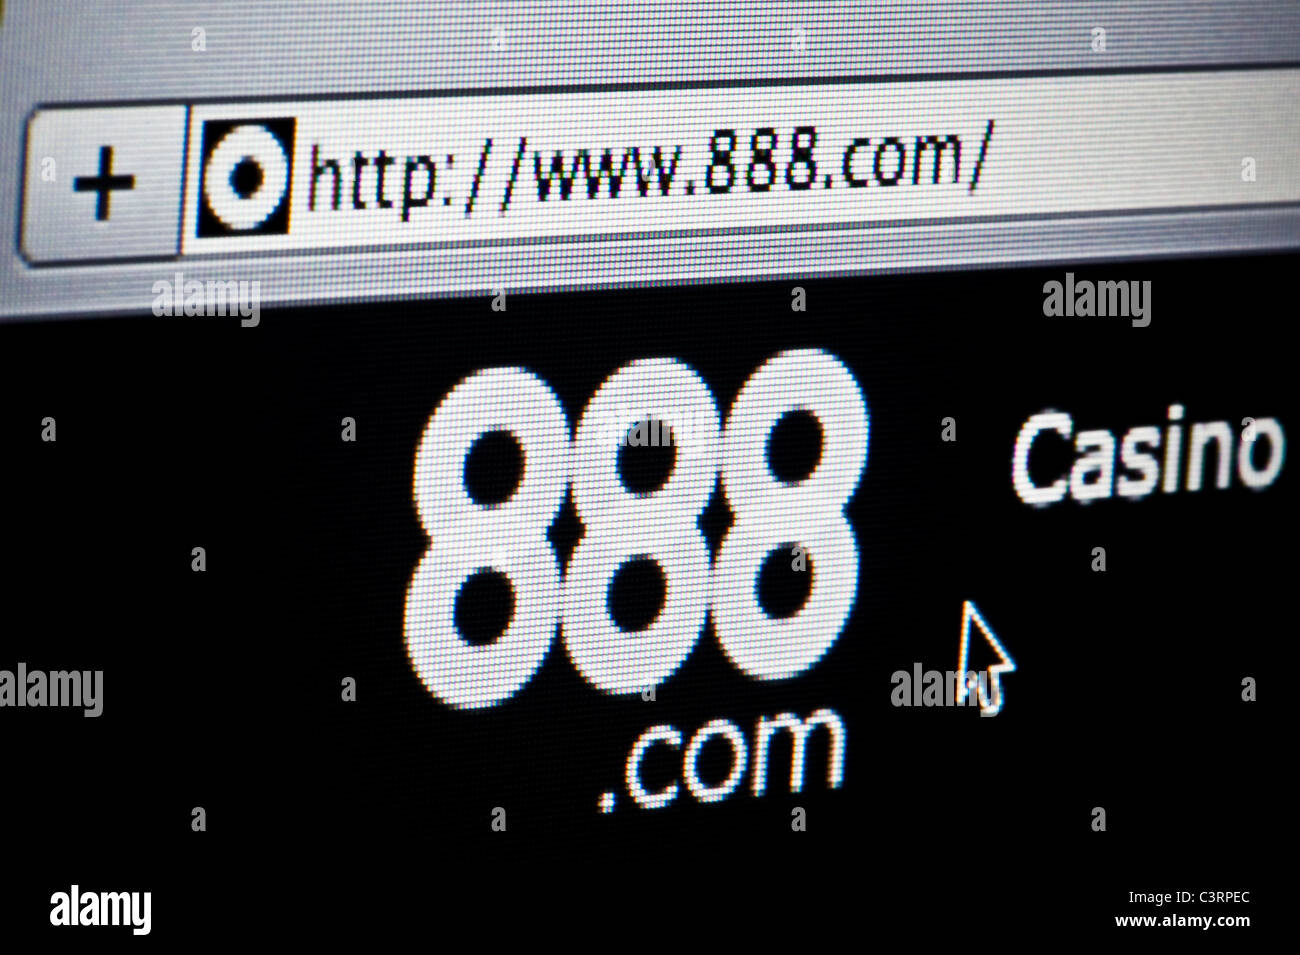 Close up of the 888 logo as seen on its website. (Editorial use only: print, TV, e-book and editorial website). - Stock Image